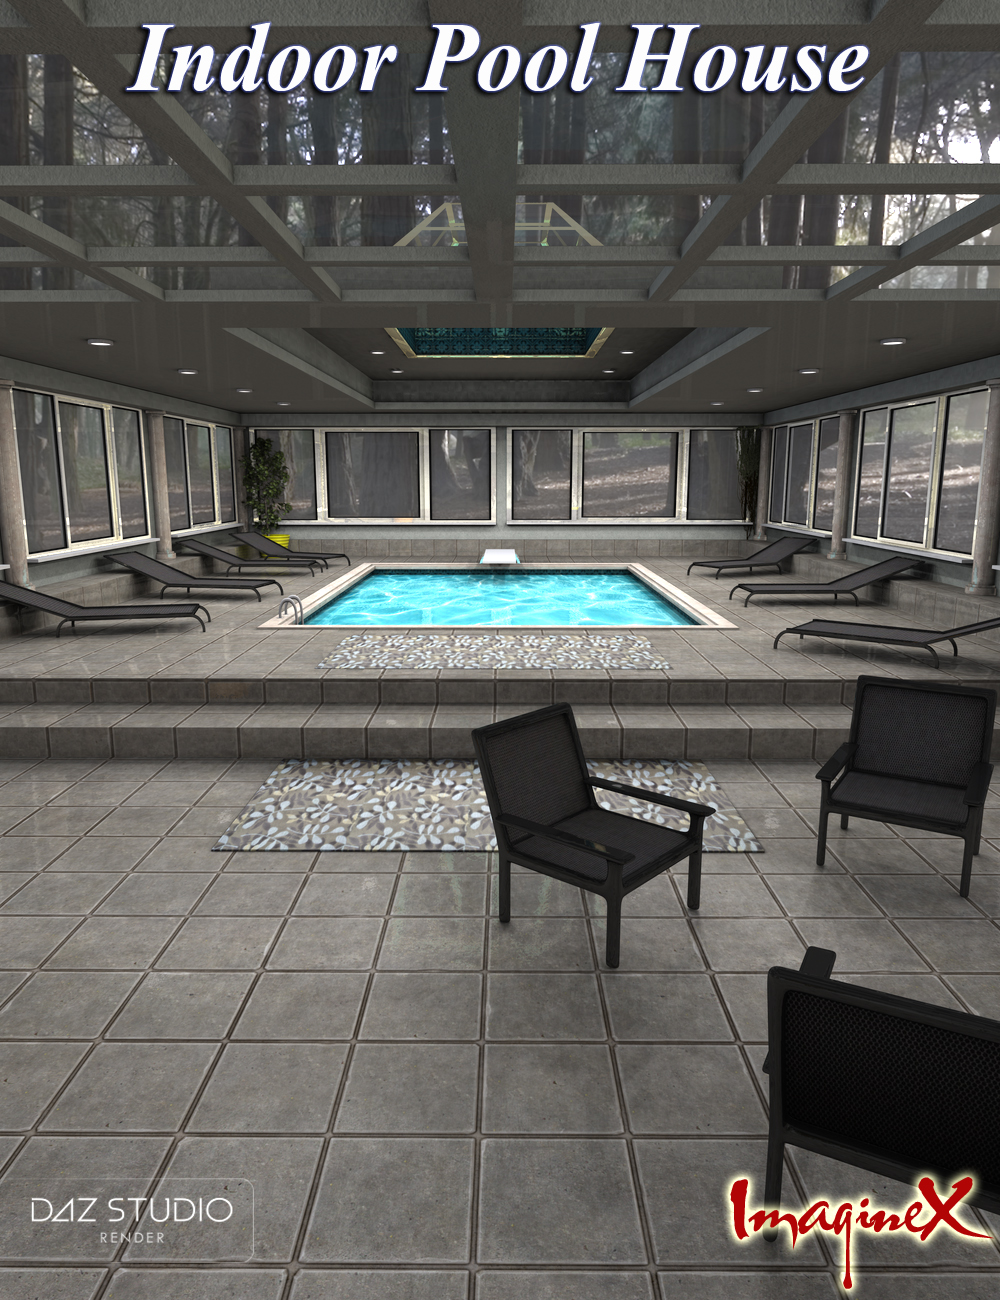 Indoor Pool House by: ImagineX, 3D Models by Daz 3D